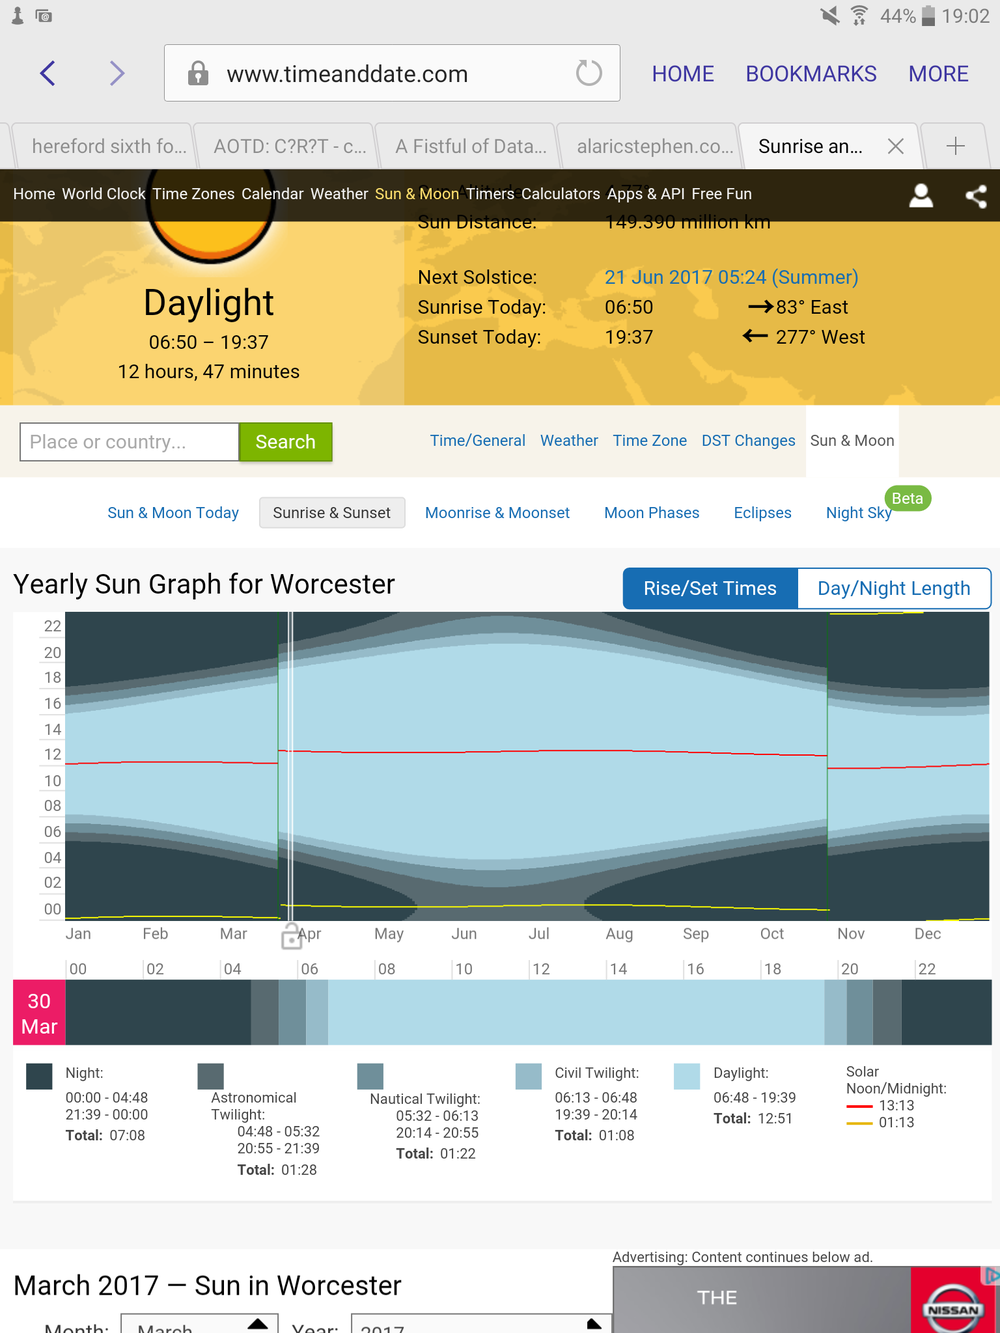 Screenshot of the website I was using to check sunrise times. You can see different bars for different types of twilight.